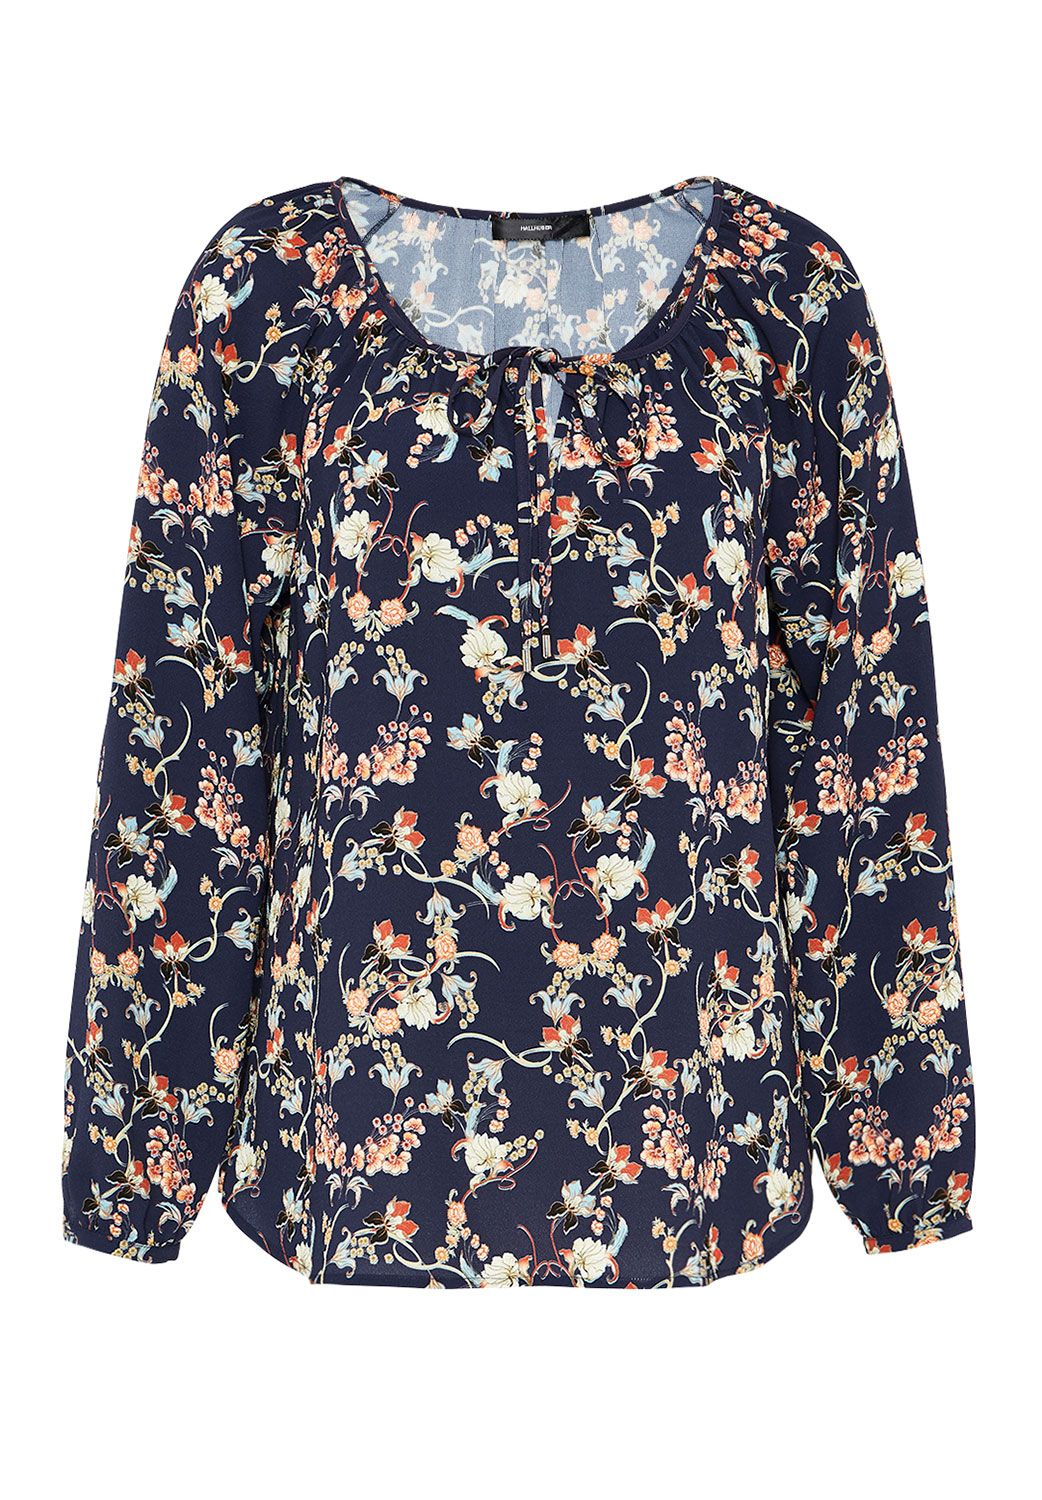 Hallhuber Floral print blouse top, Multi-Coloured